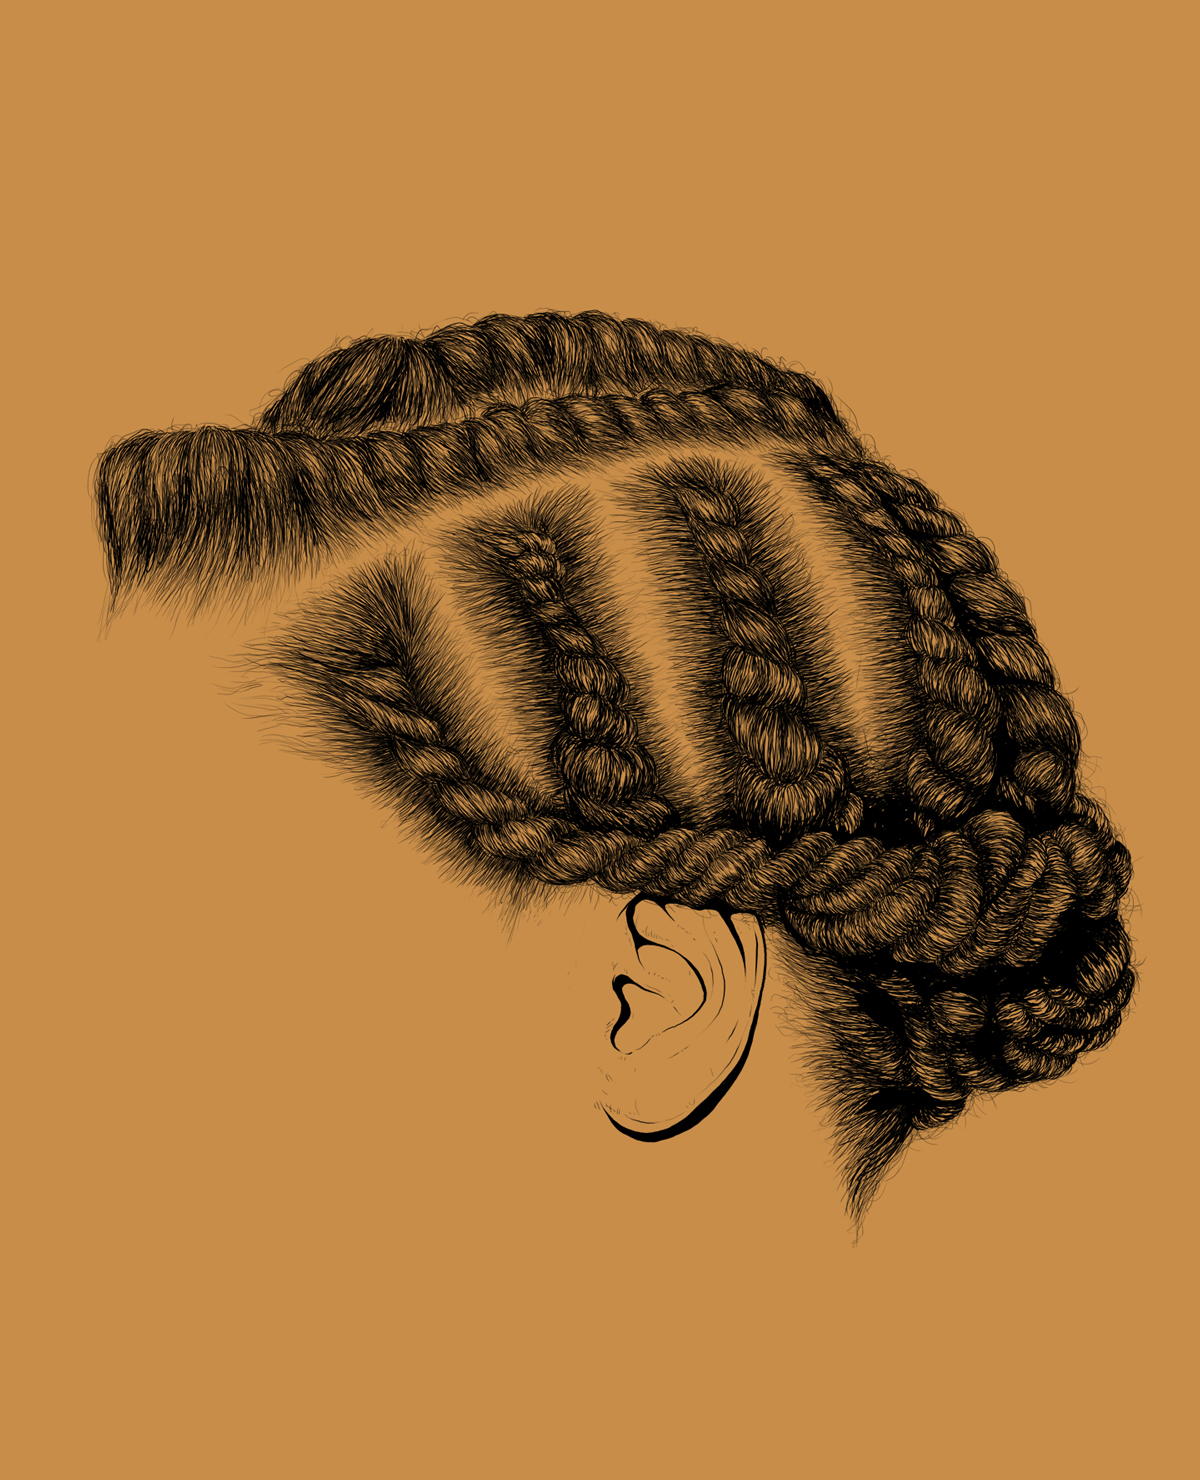 braided, style, illustration, digital